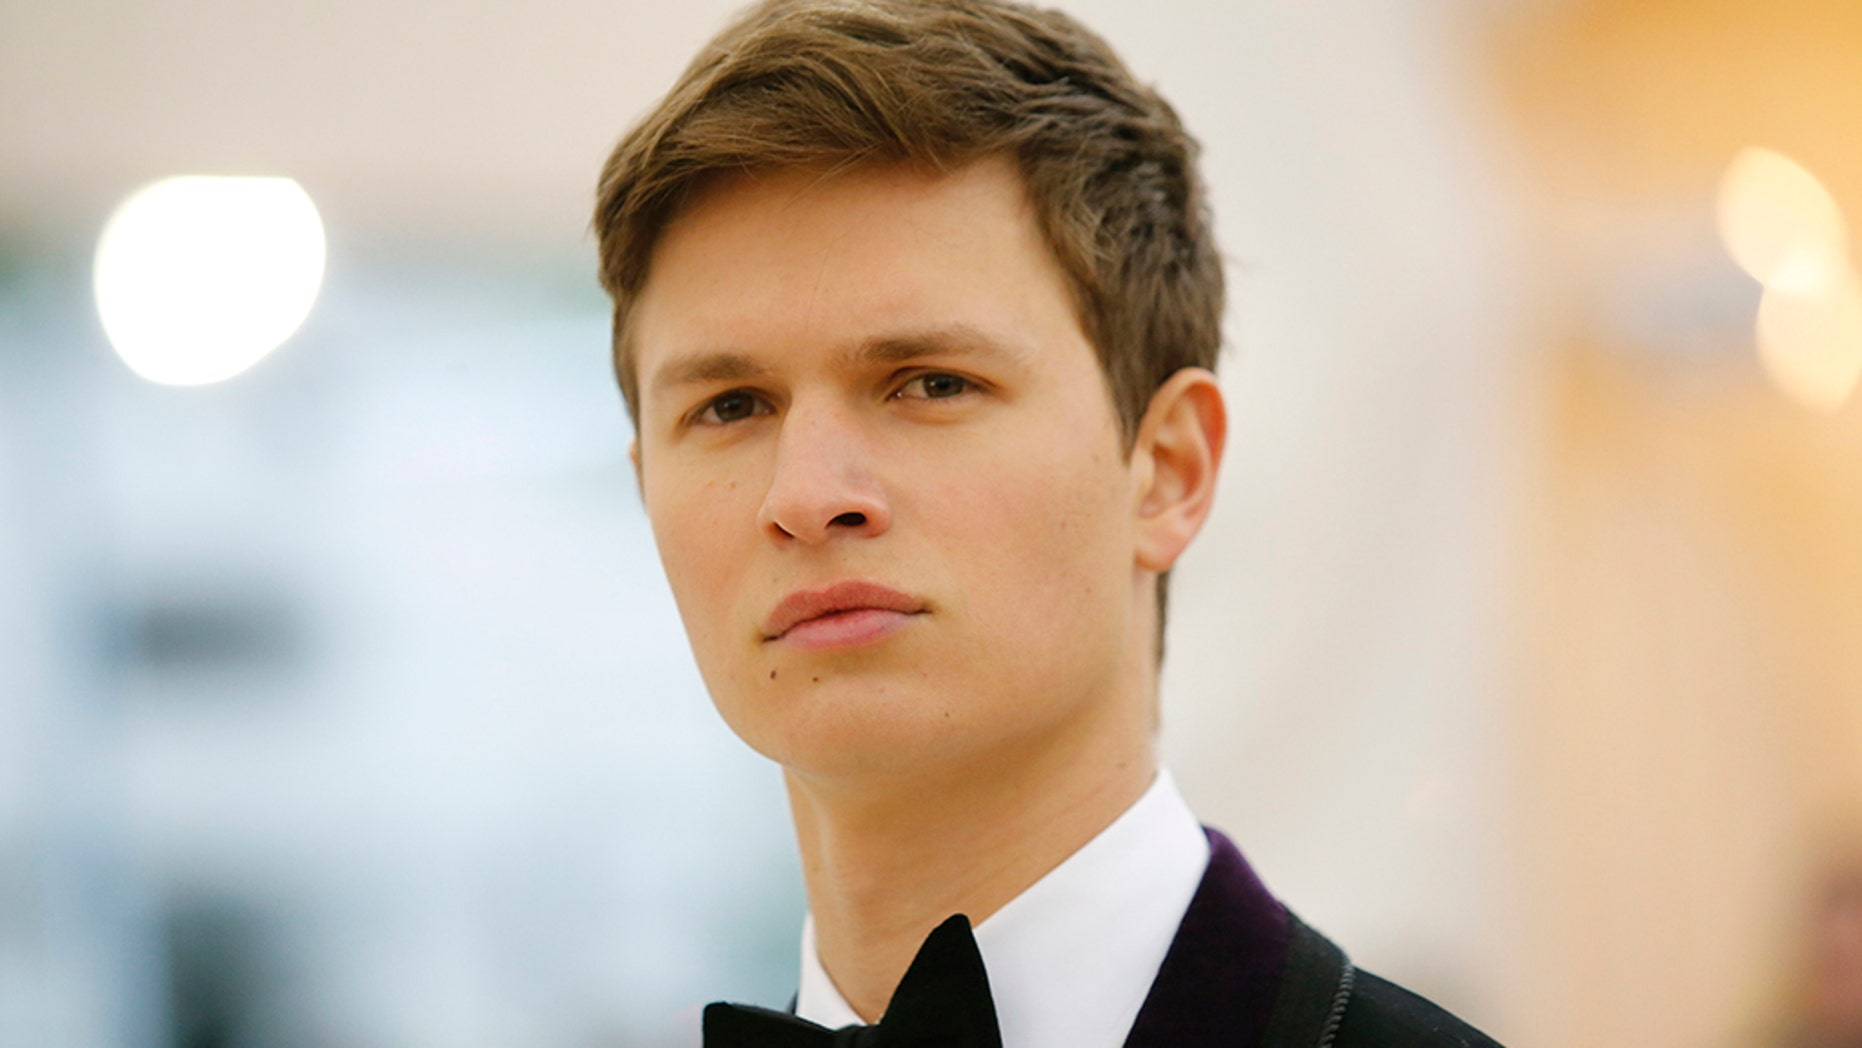 Ansel Elgort to Star in Steven Spielberg's 'West Side Story'